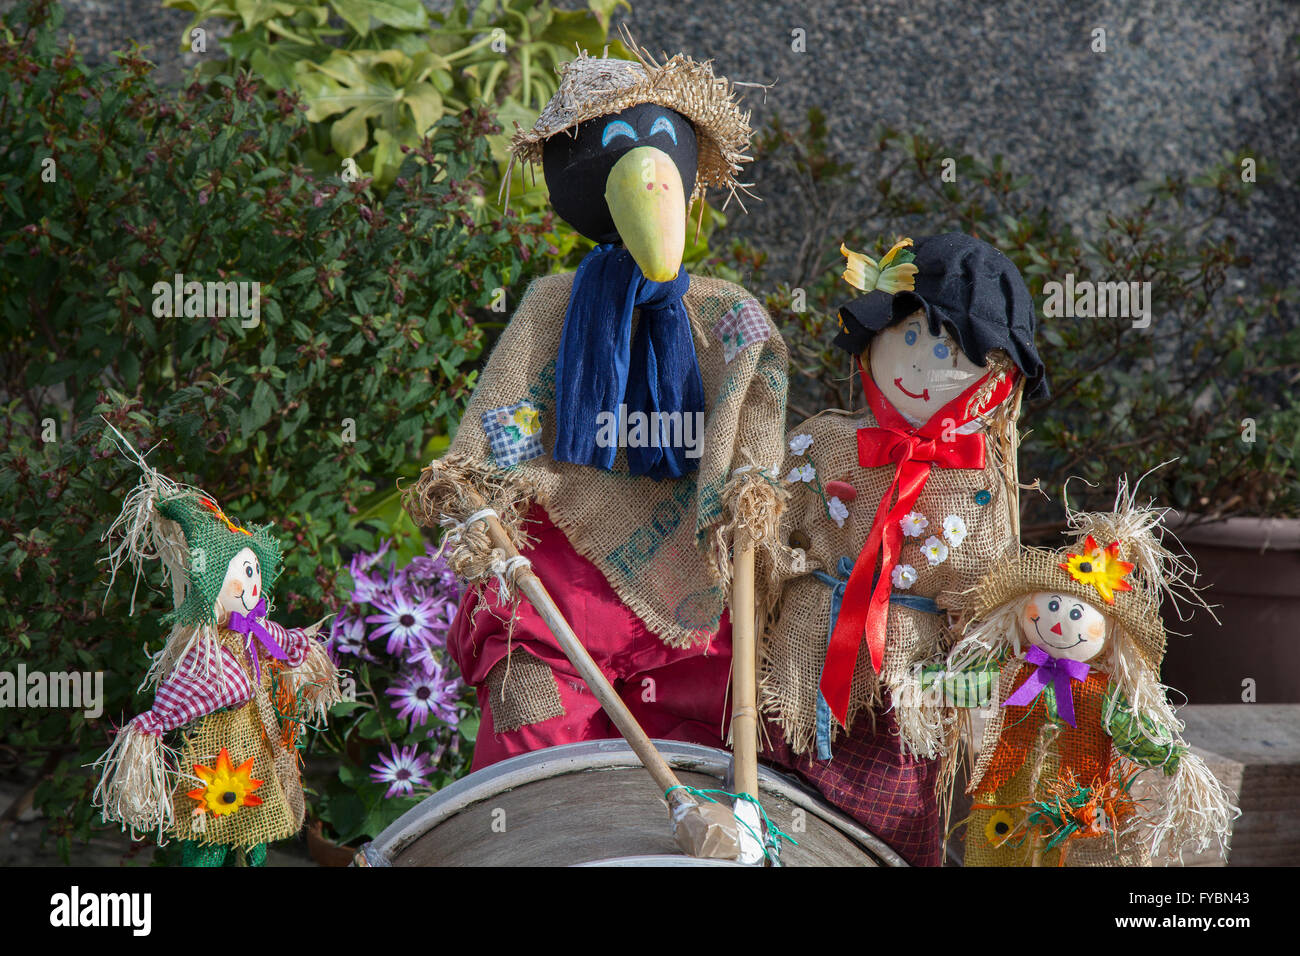 A family group of straw dolls, & figures at Wray's Annual Scarecrow Festival.  The villagers of Wray are - Stock Image